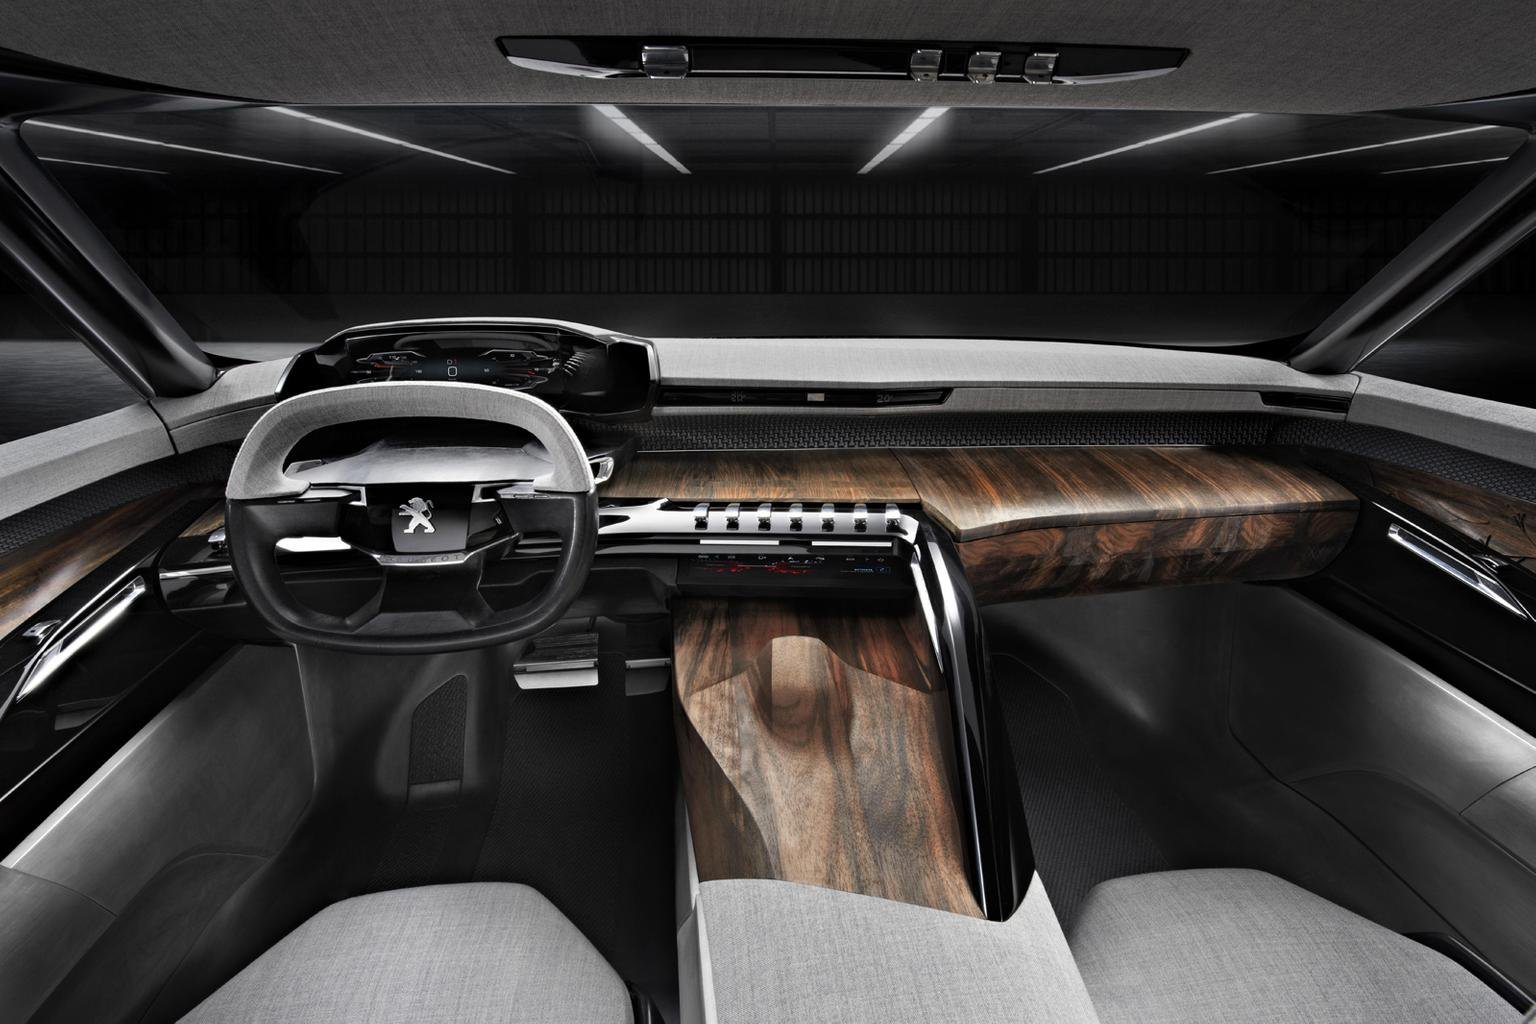 Peugeot looks at radical interiors for 2016 models